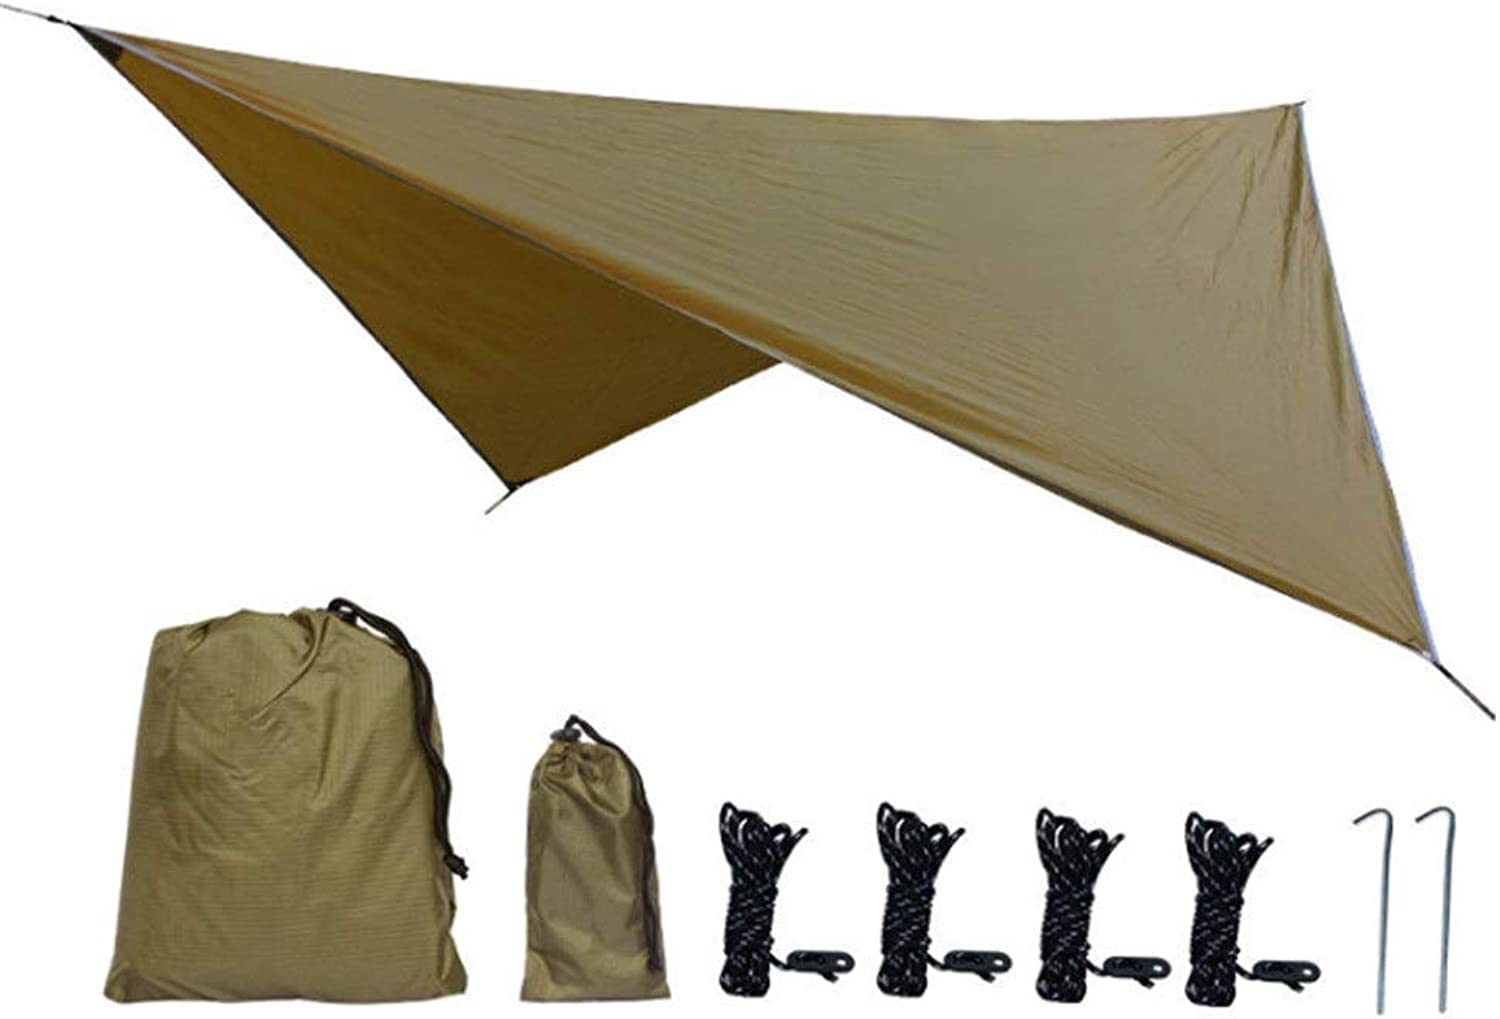 Feet Waterproof Hammock Rain Fly Tent Sunshade Tarp Shelter with Stakes Ropes Survival Gear Kit for Camping Backpacking Fishing Beach Picnic 11.8x9.5,Outdoor (color   Camel, Size   Free Size)